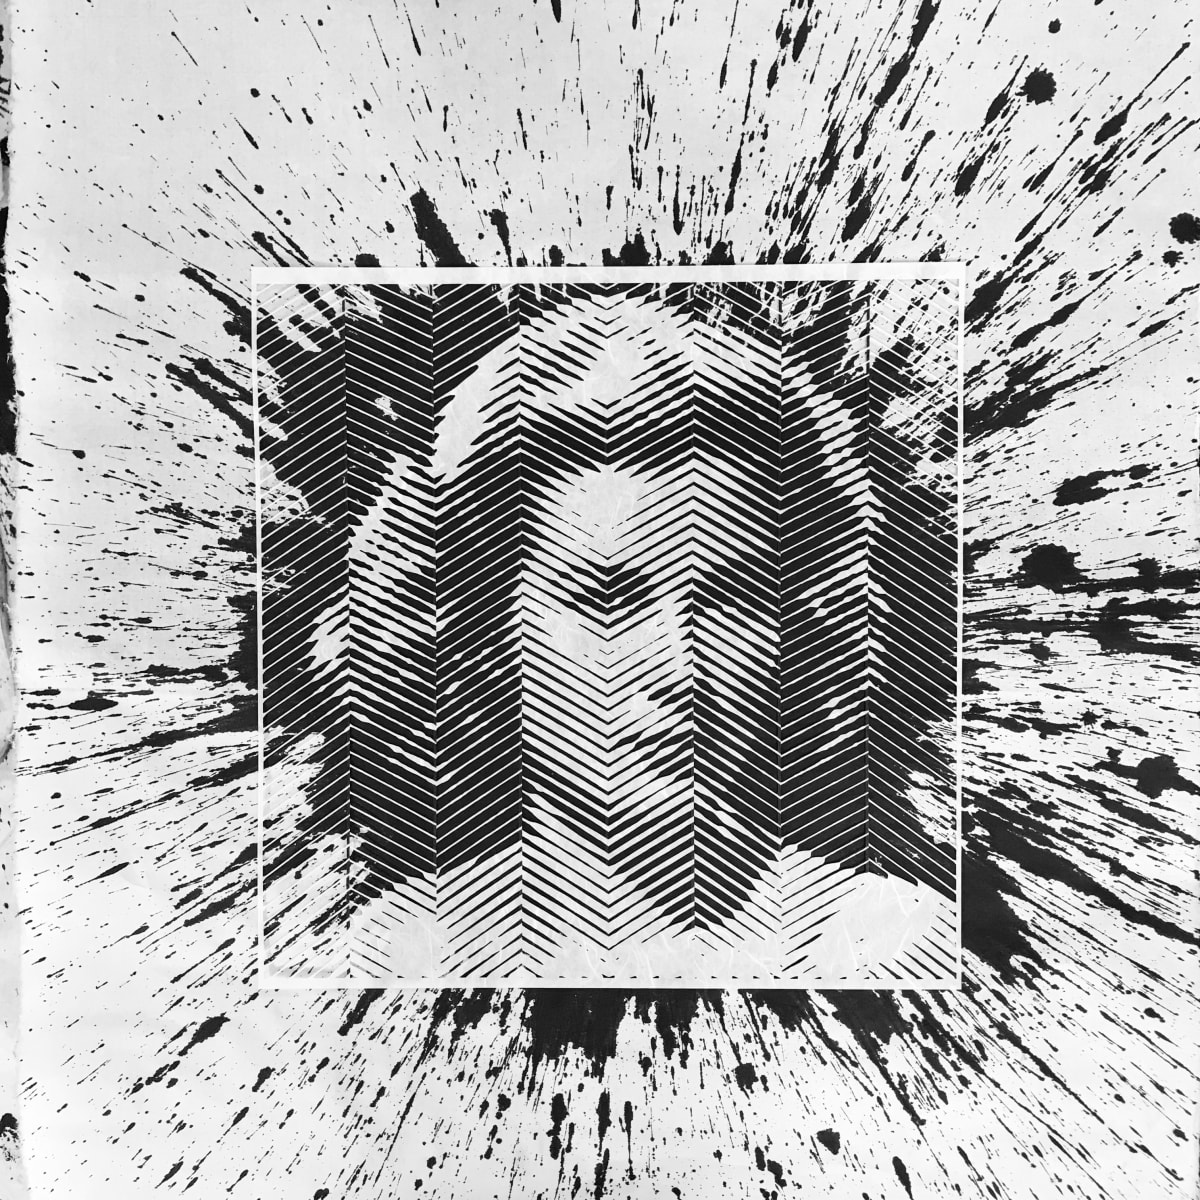 Yoo Hyun, Untitled (Grace Kelly), 2019